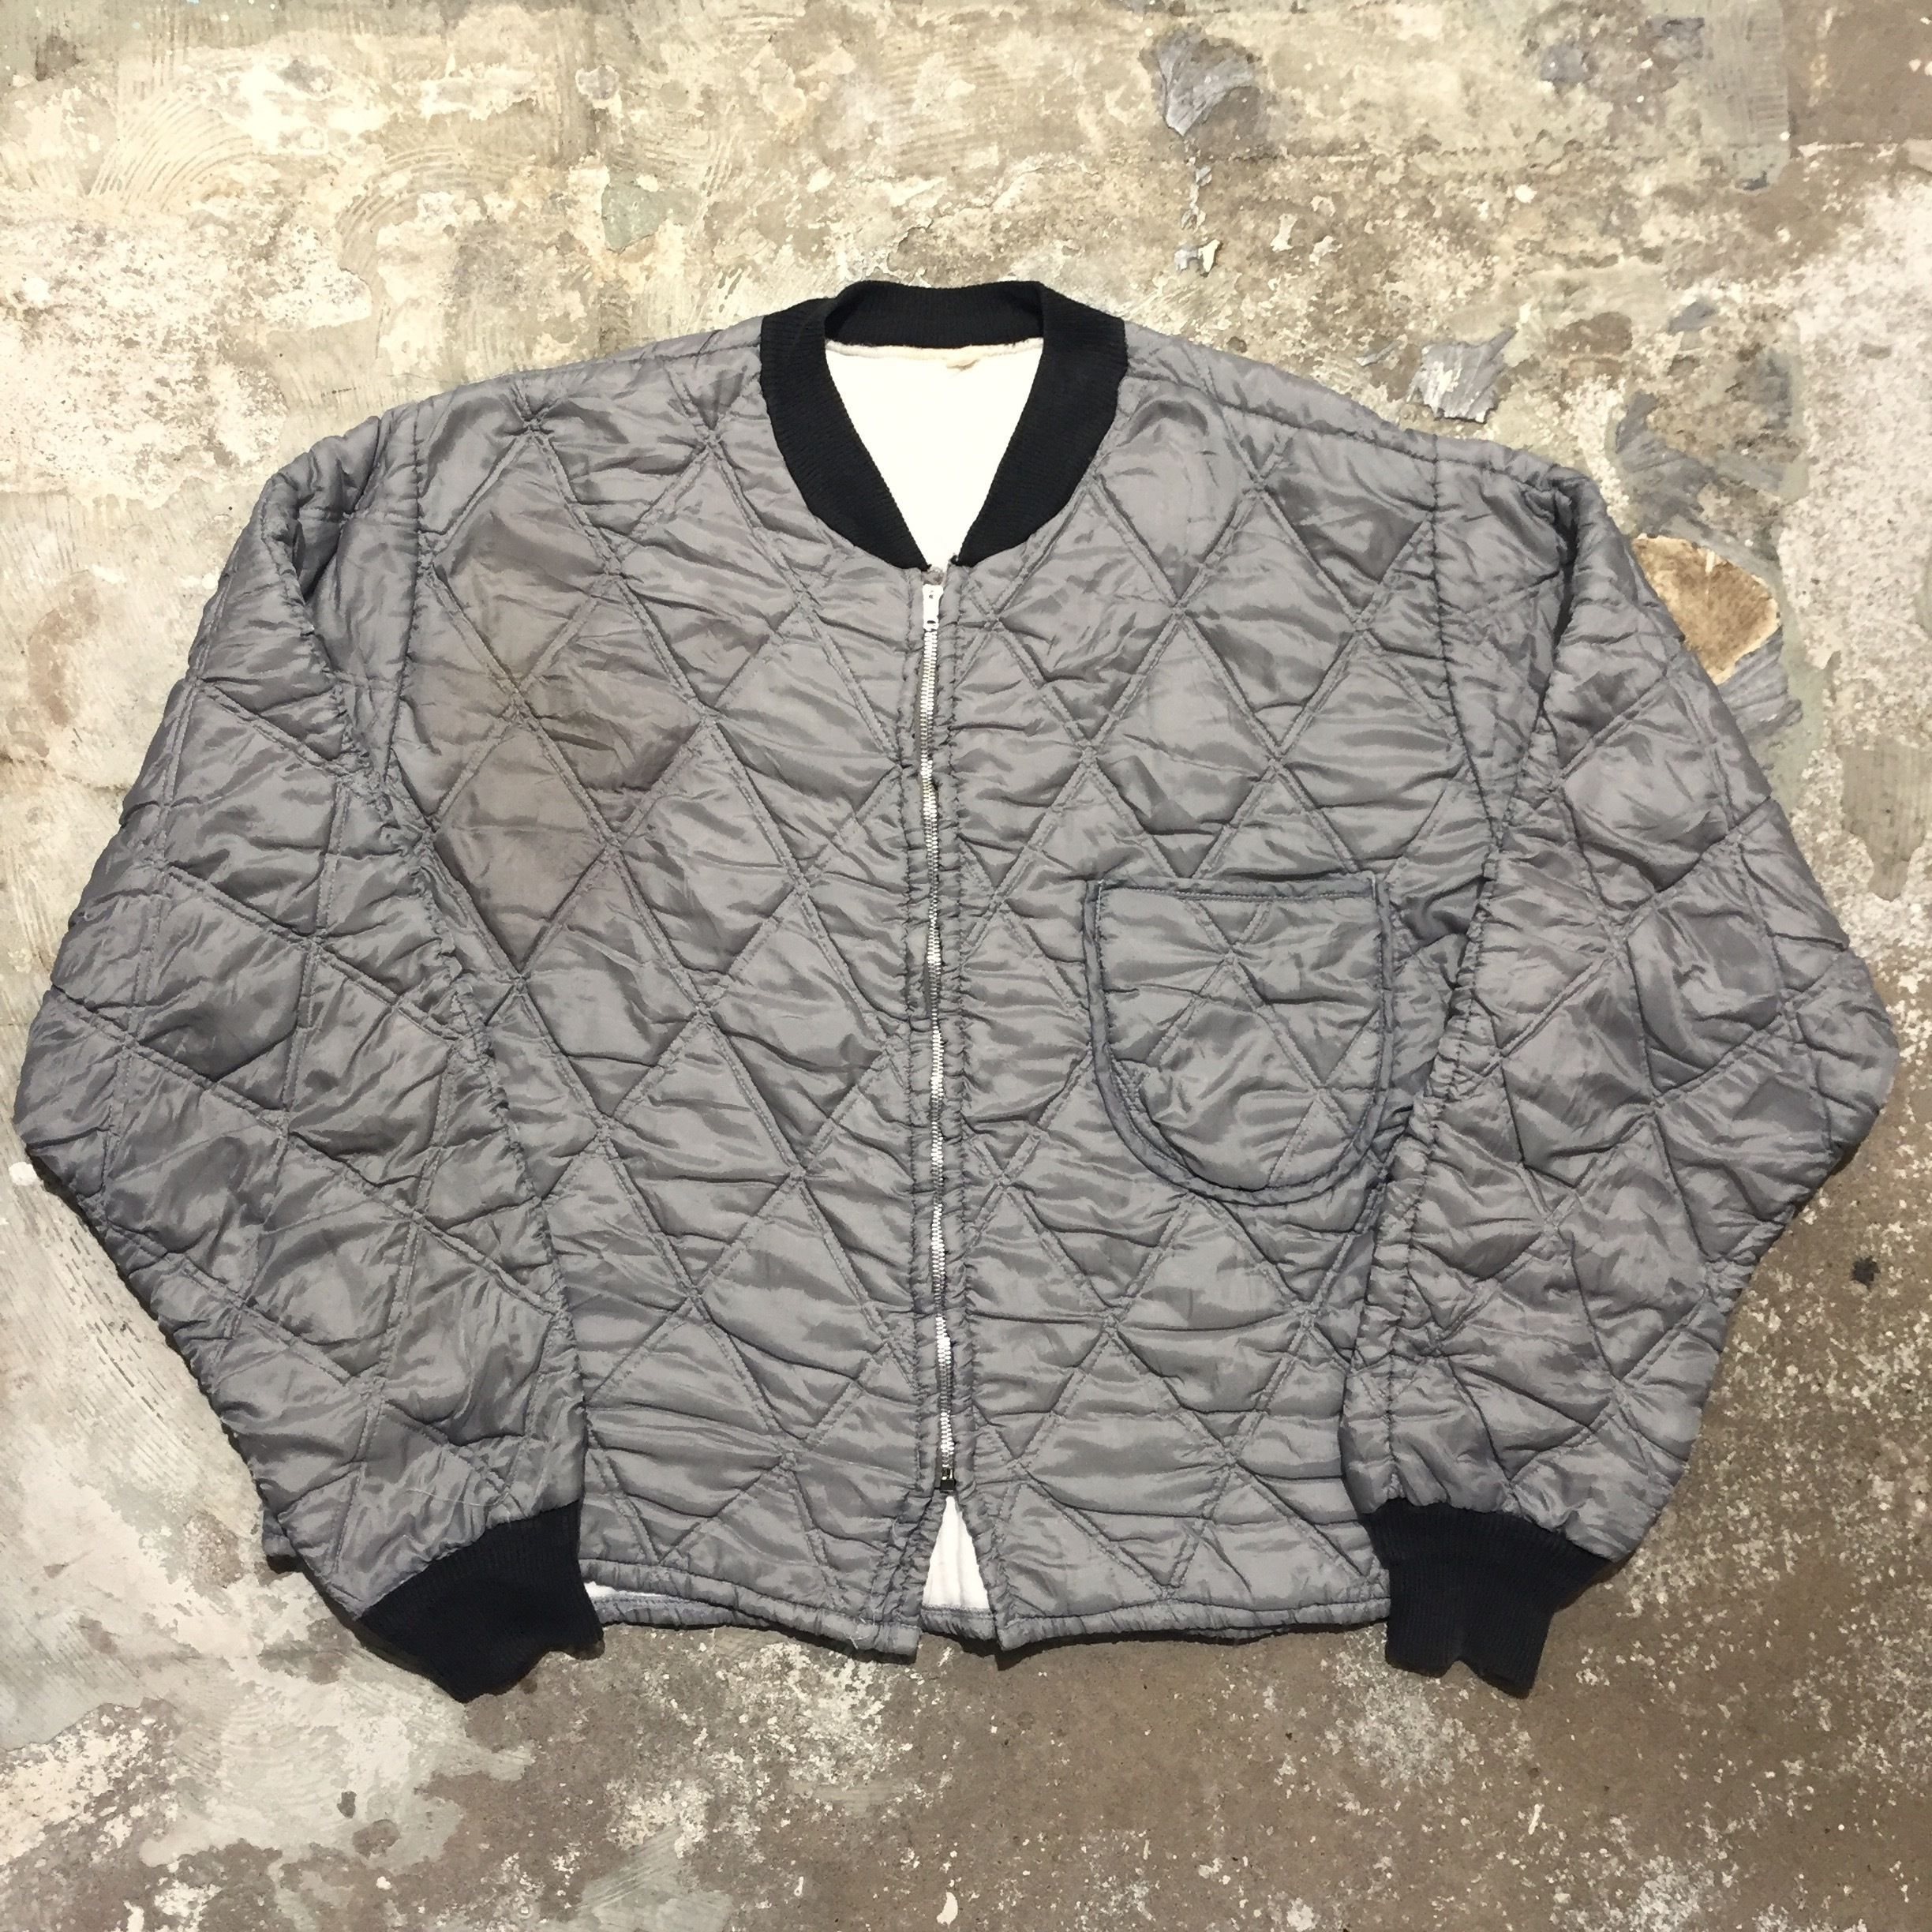 70's Unknown Quilting Jacket